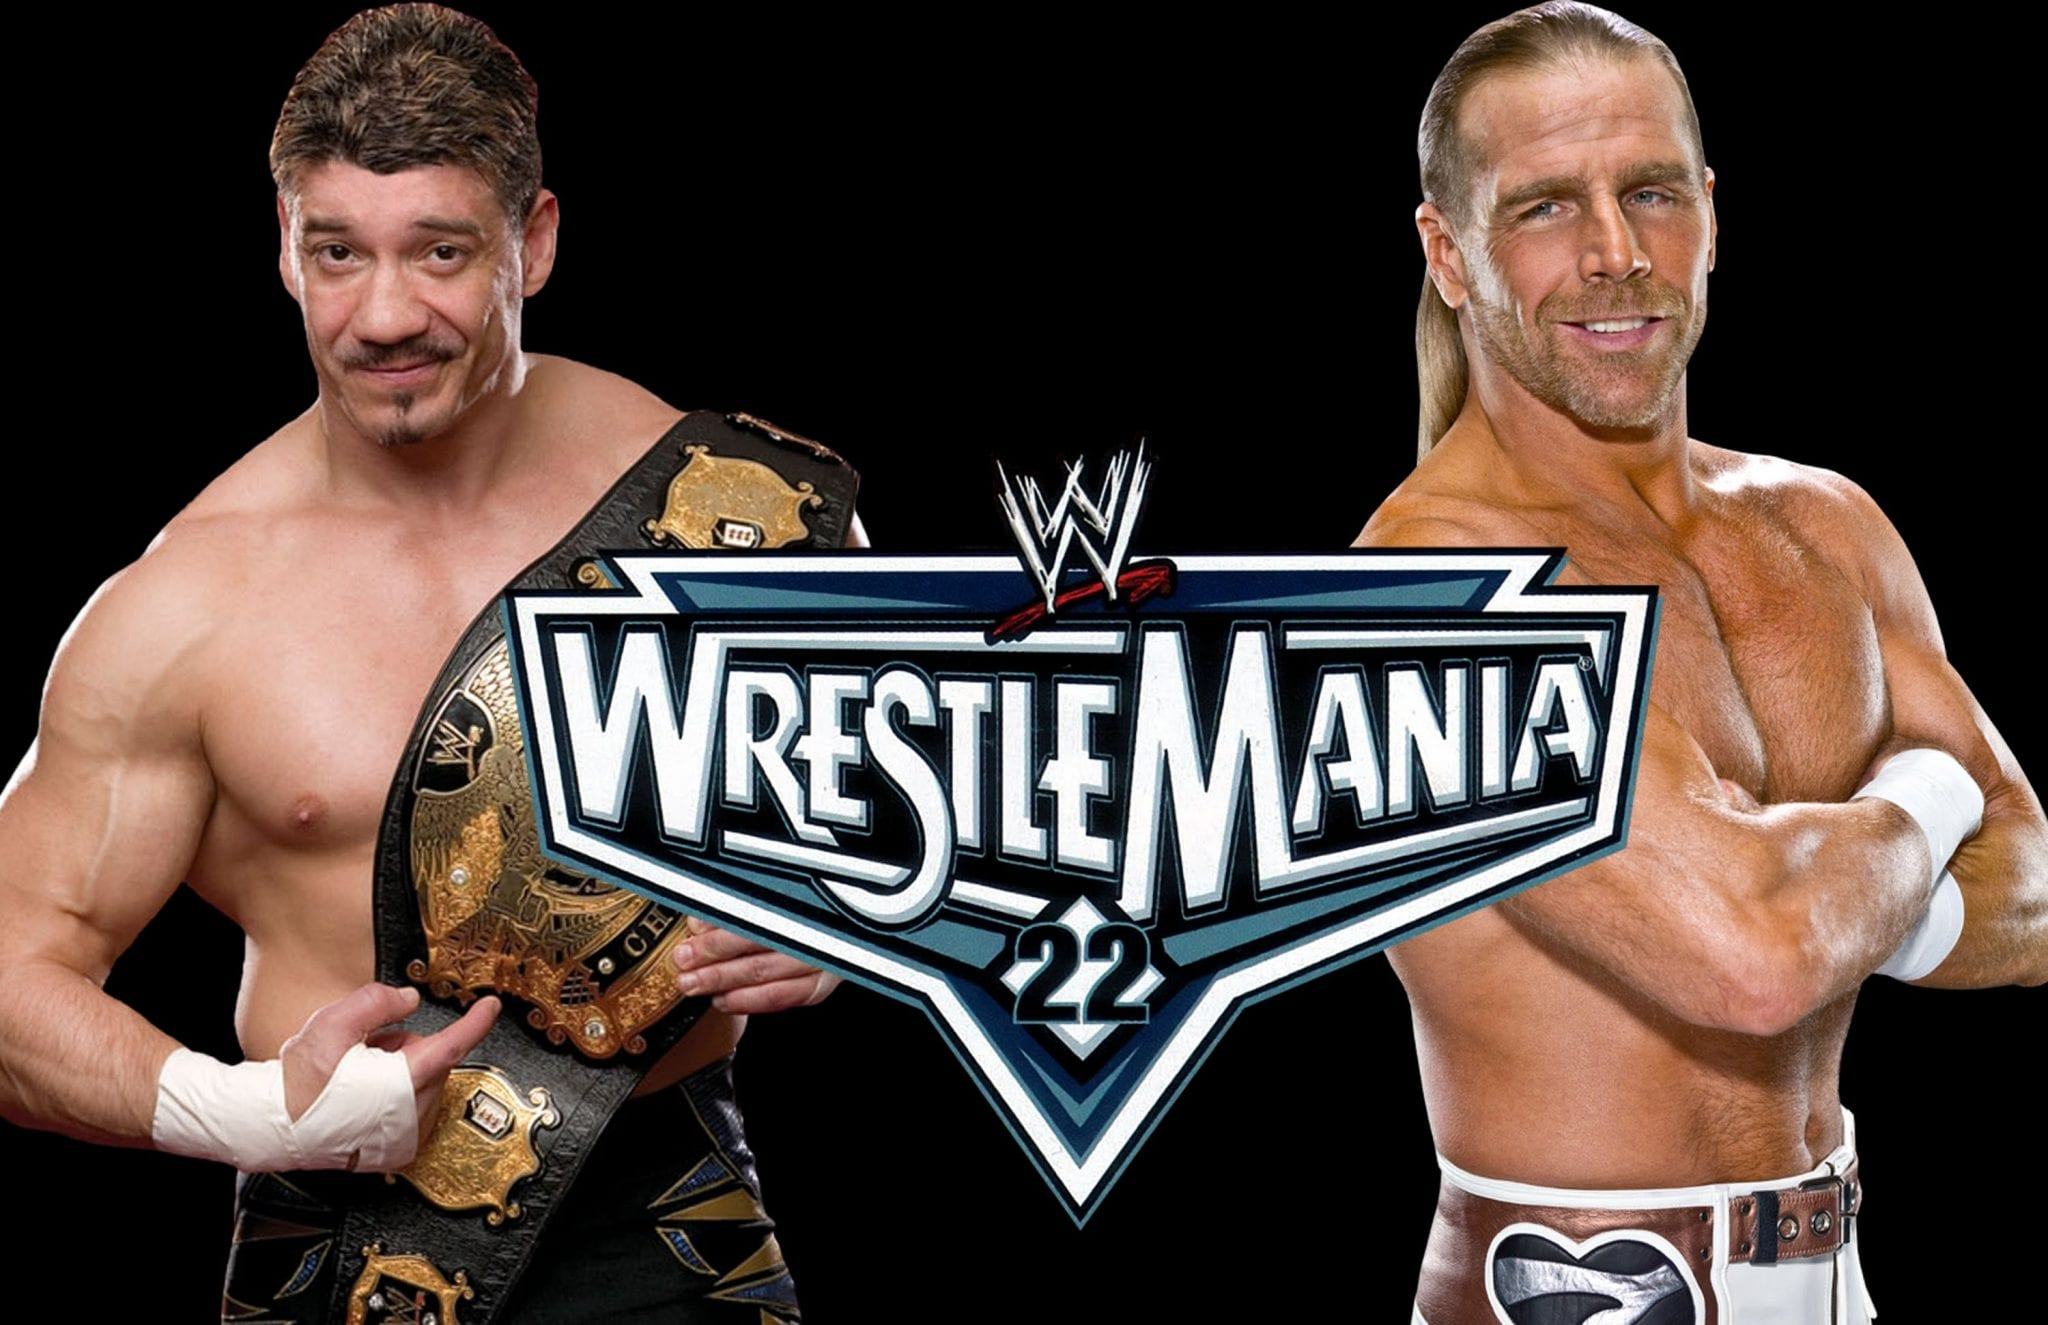 Eddie Guerrero vs. Shawn Michaels - WrestleMania 22